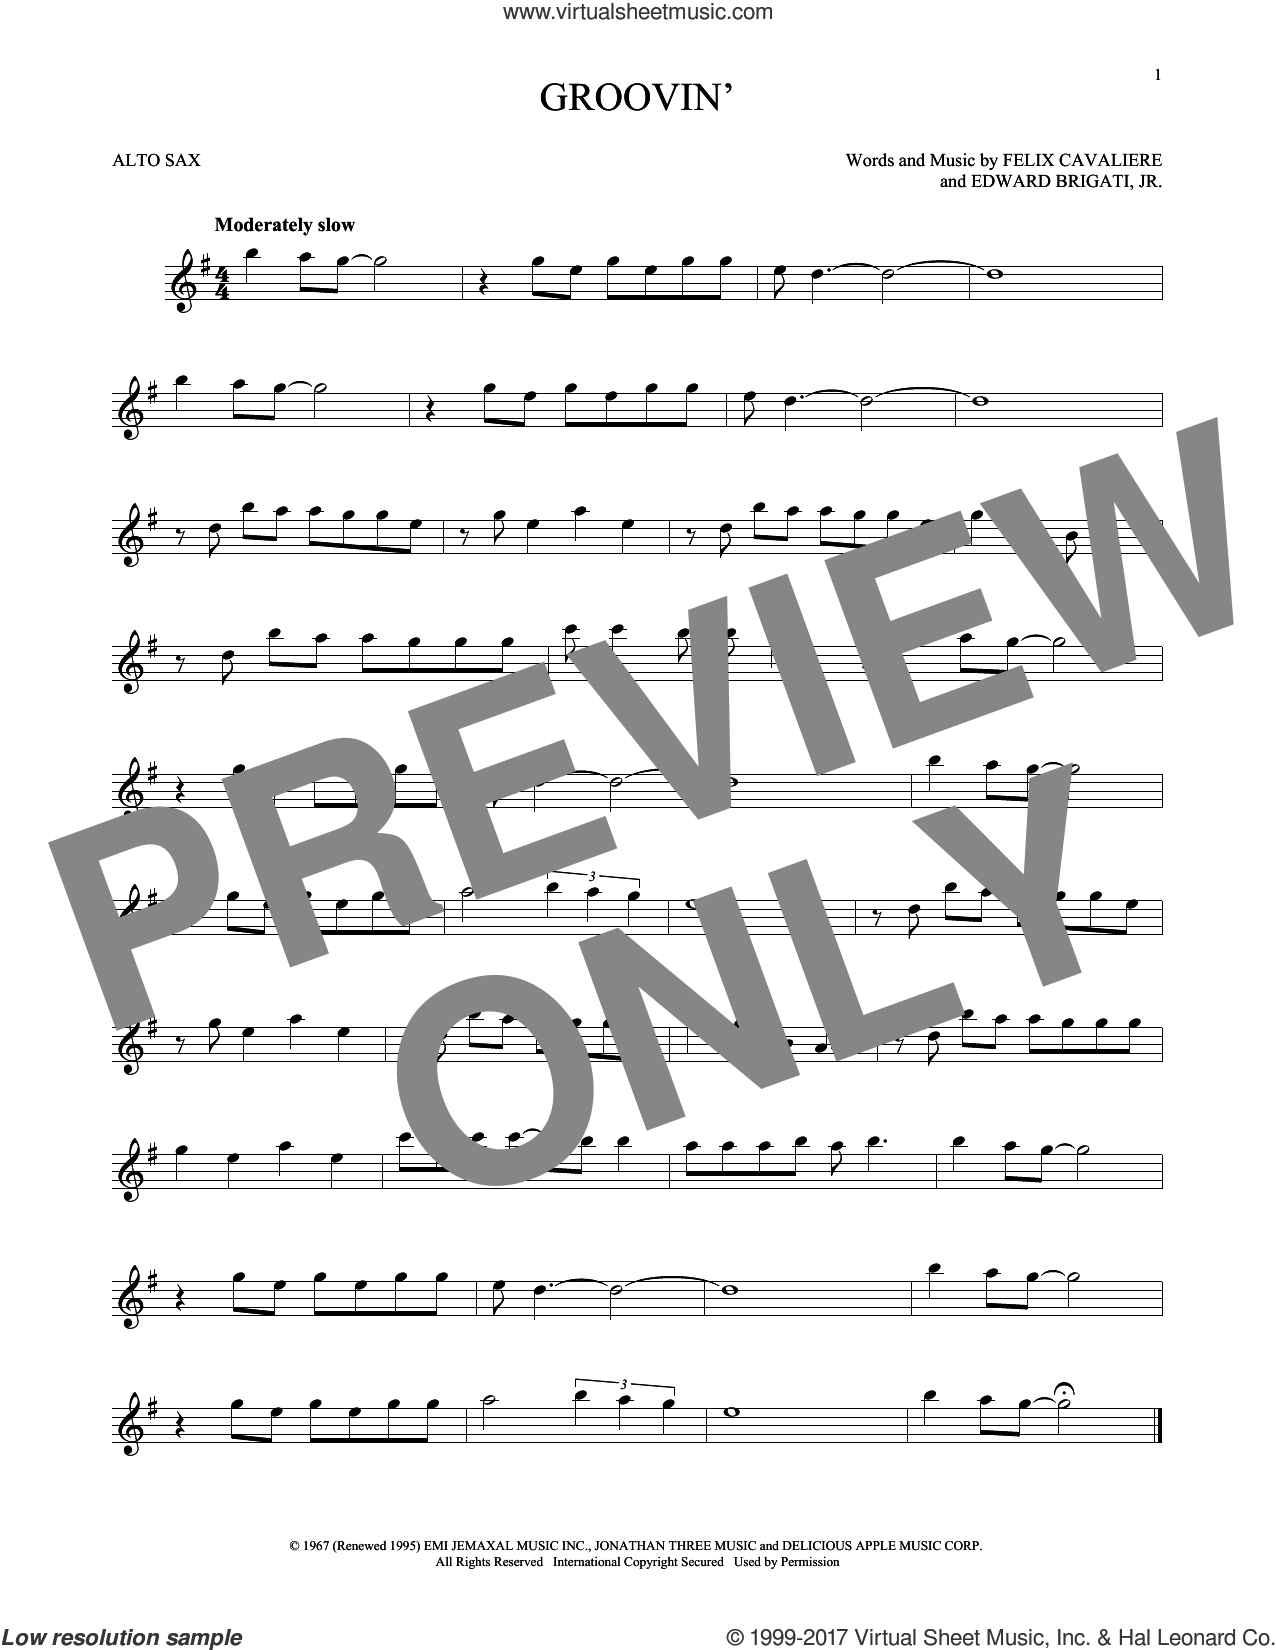 Groovin' sheet music for alto saxophone solo by Young Rascals, Edward Brigati Jr. and Felix Cavaliere, intermediate skill level